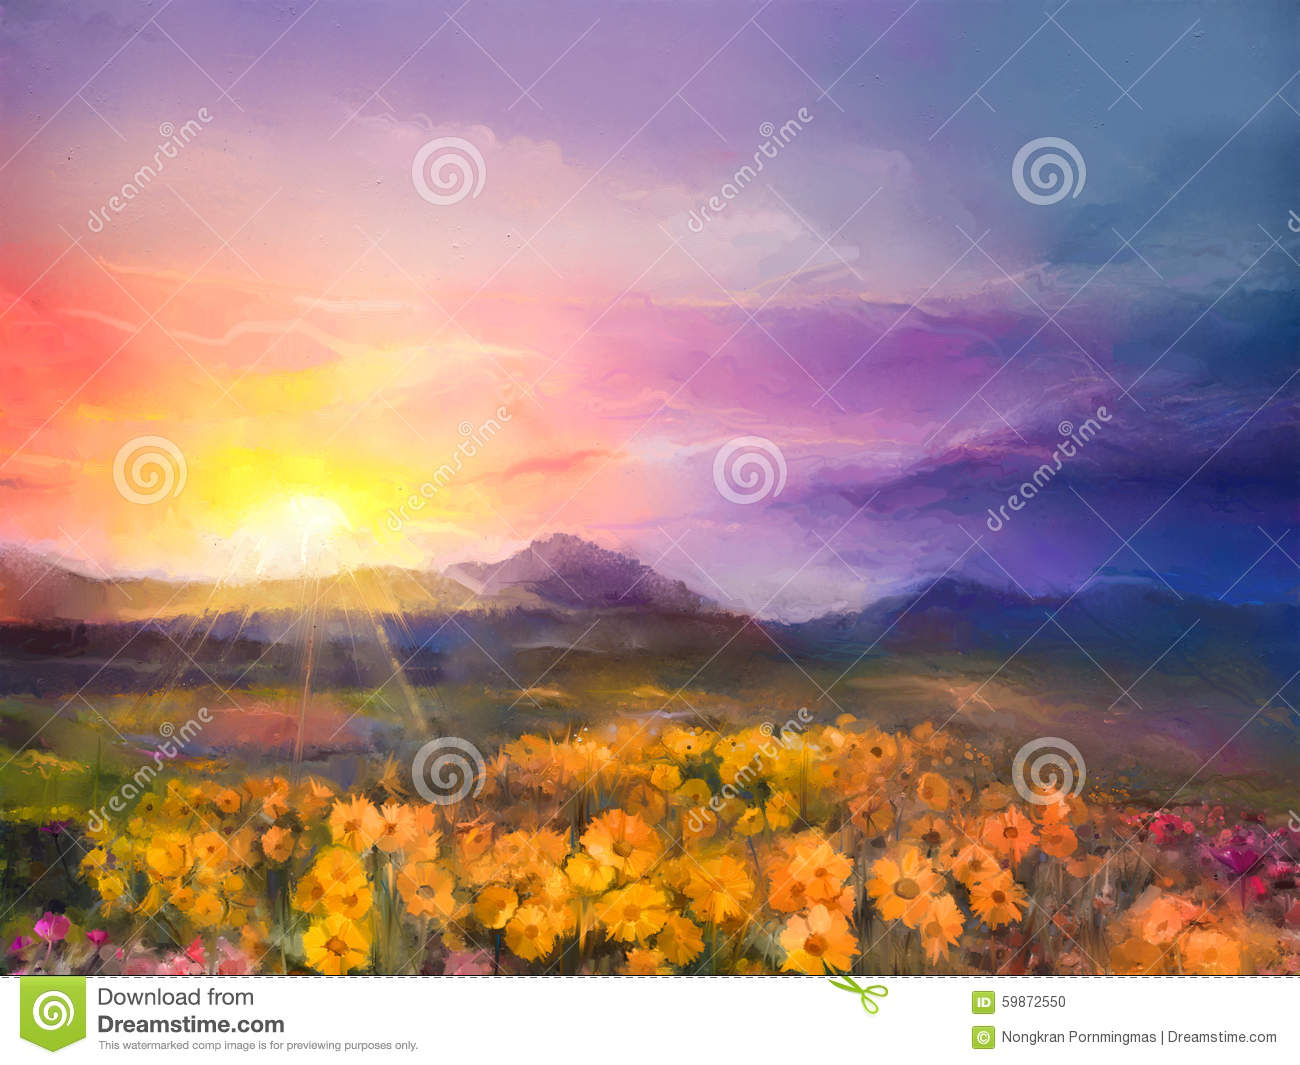 Oil painting yellow- golden daisy flowers in fields. Sunset mead